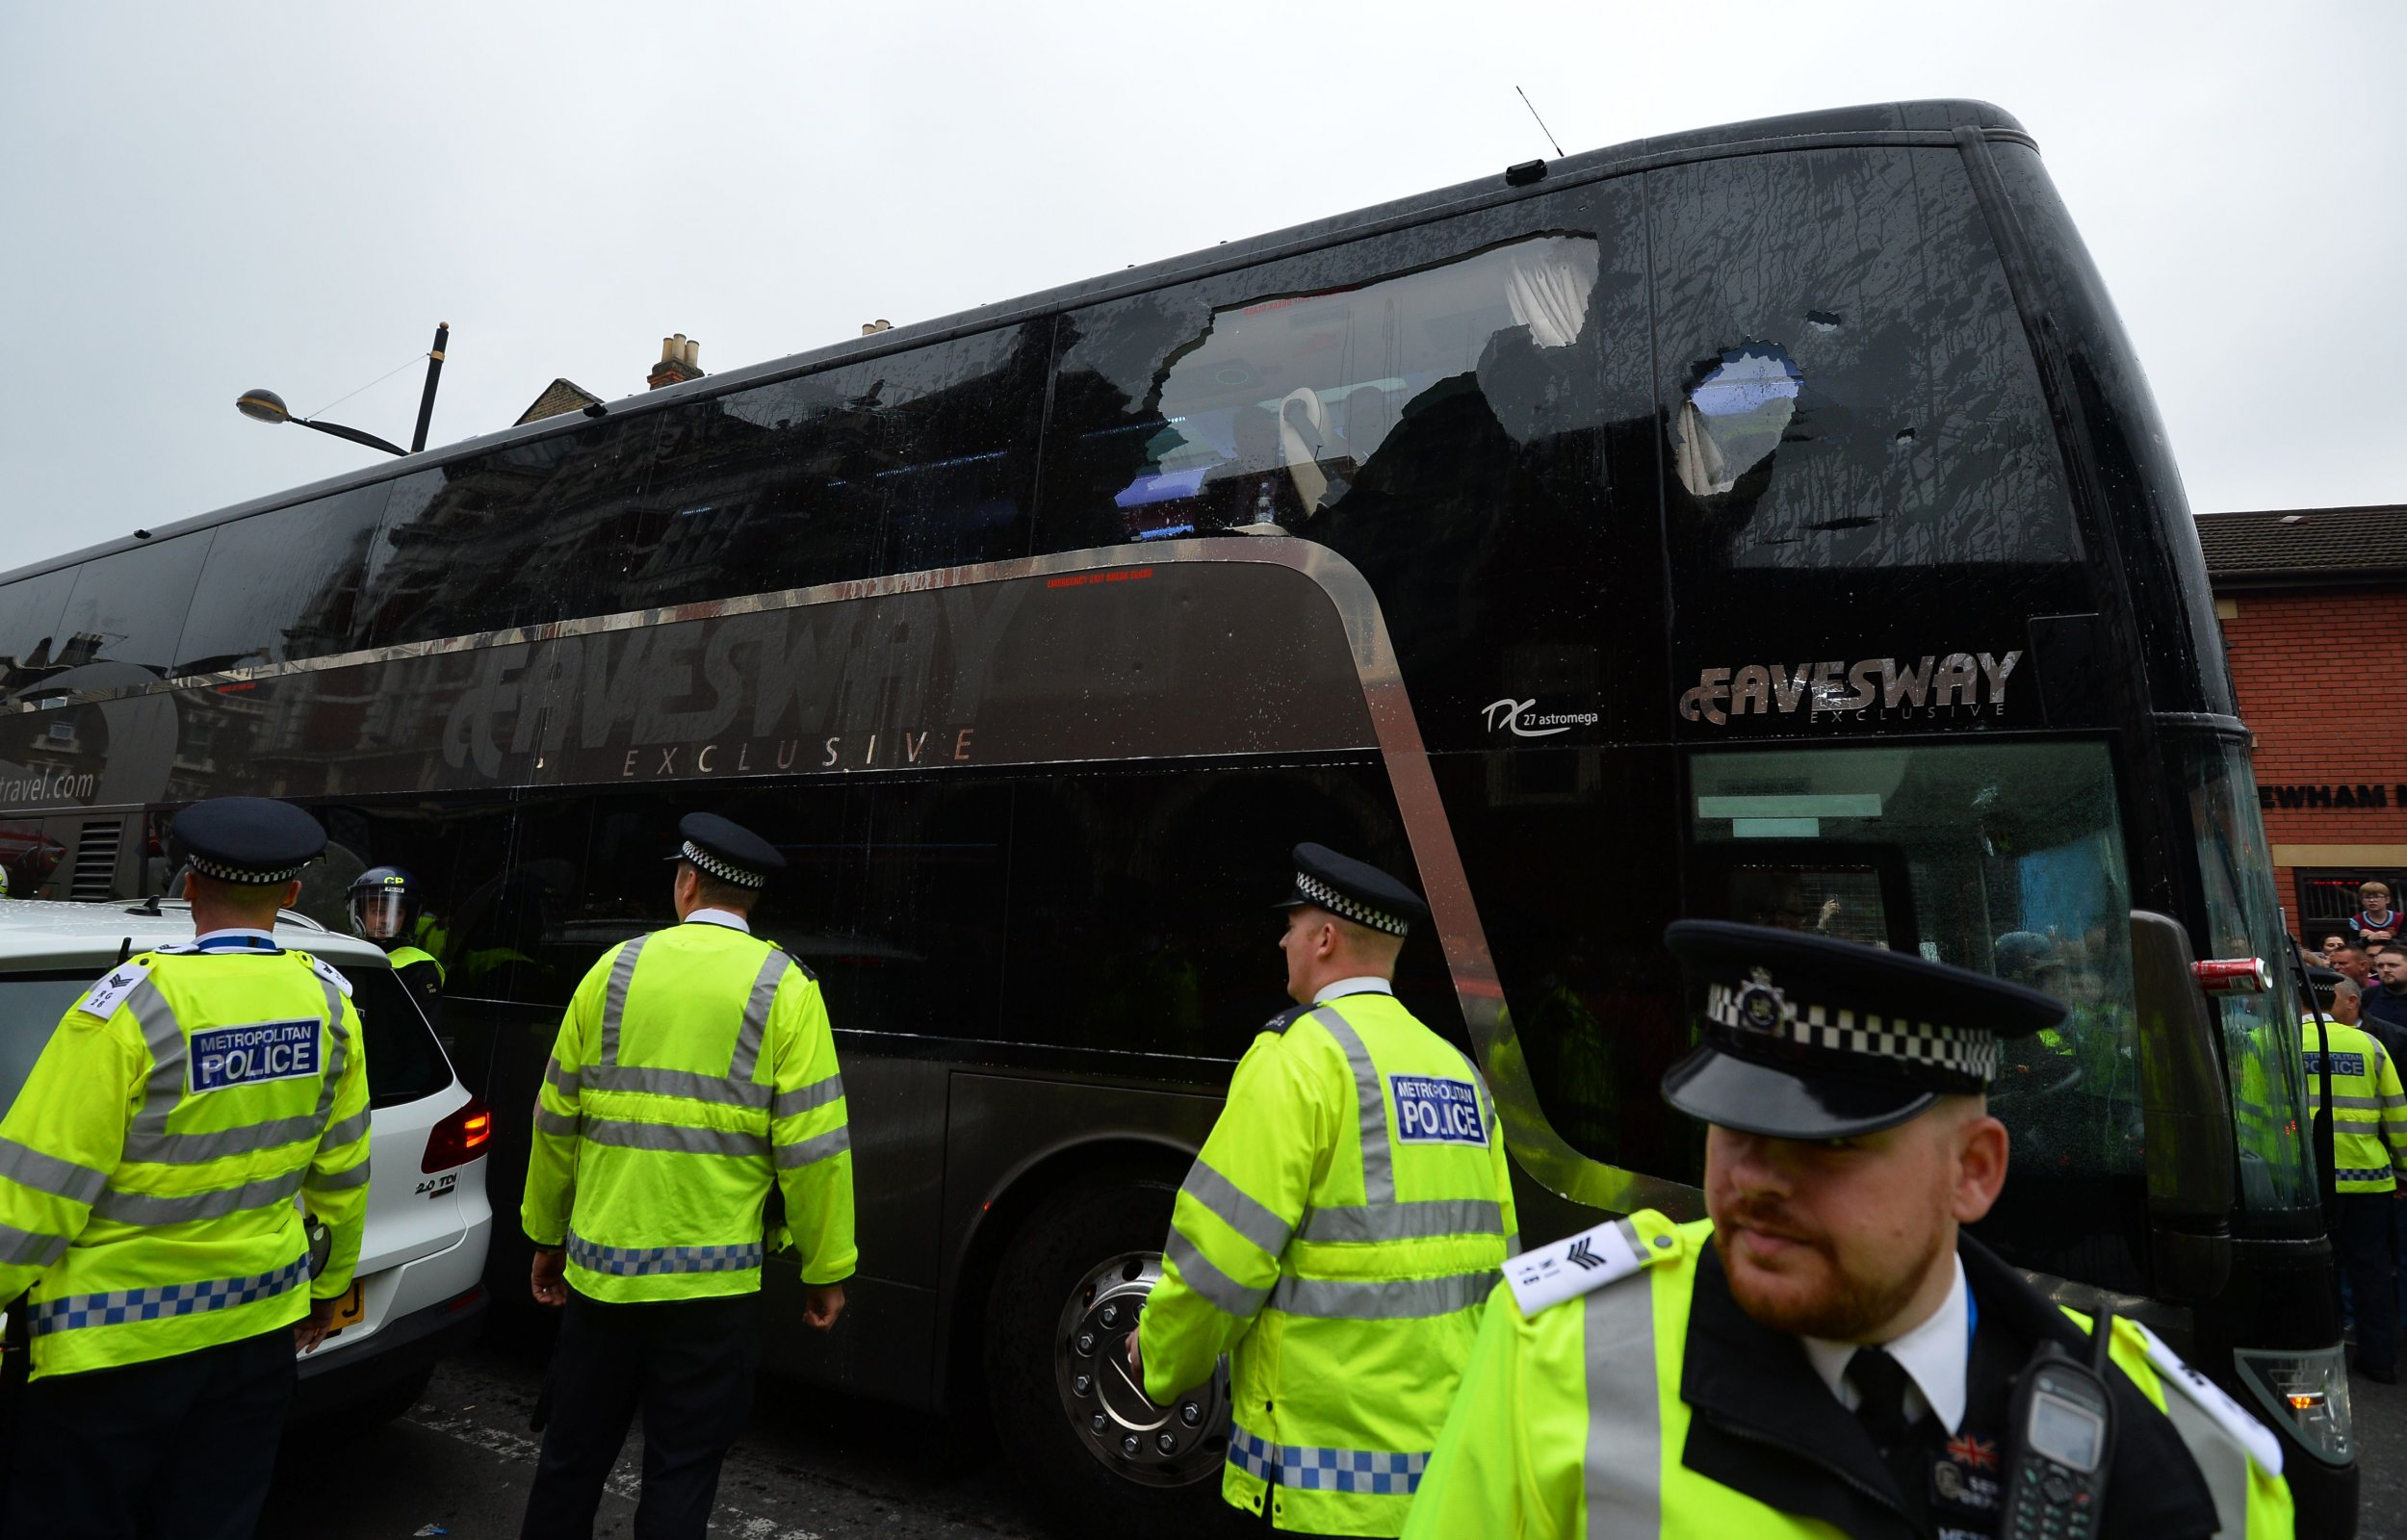 The Manchester United team bus